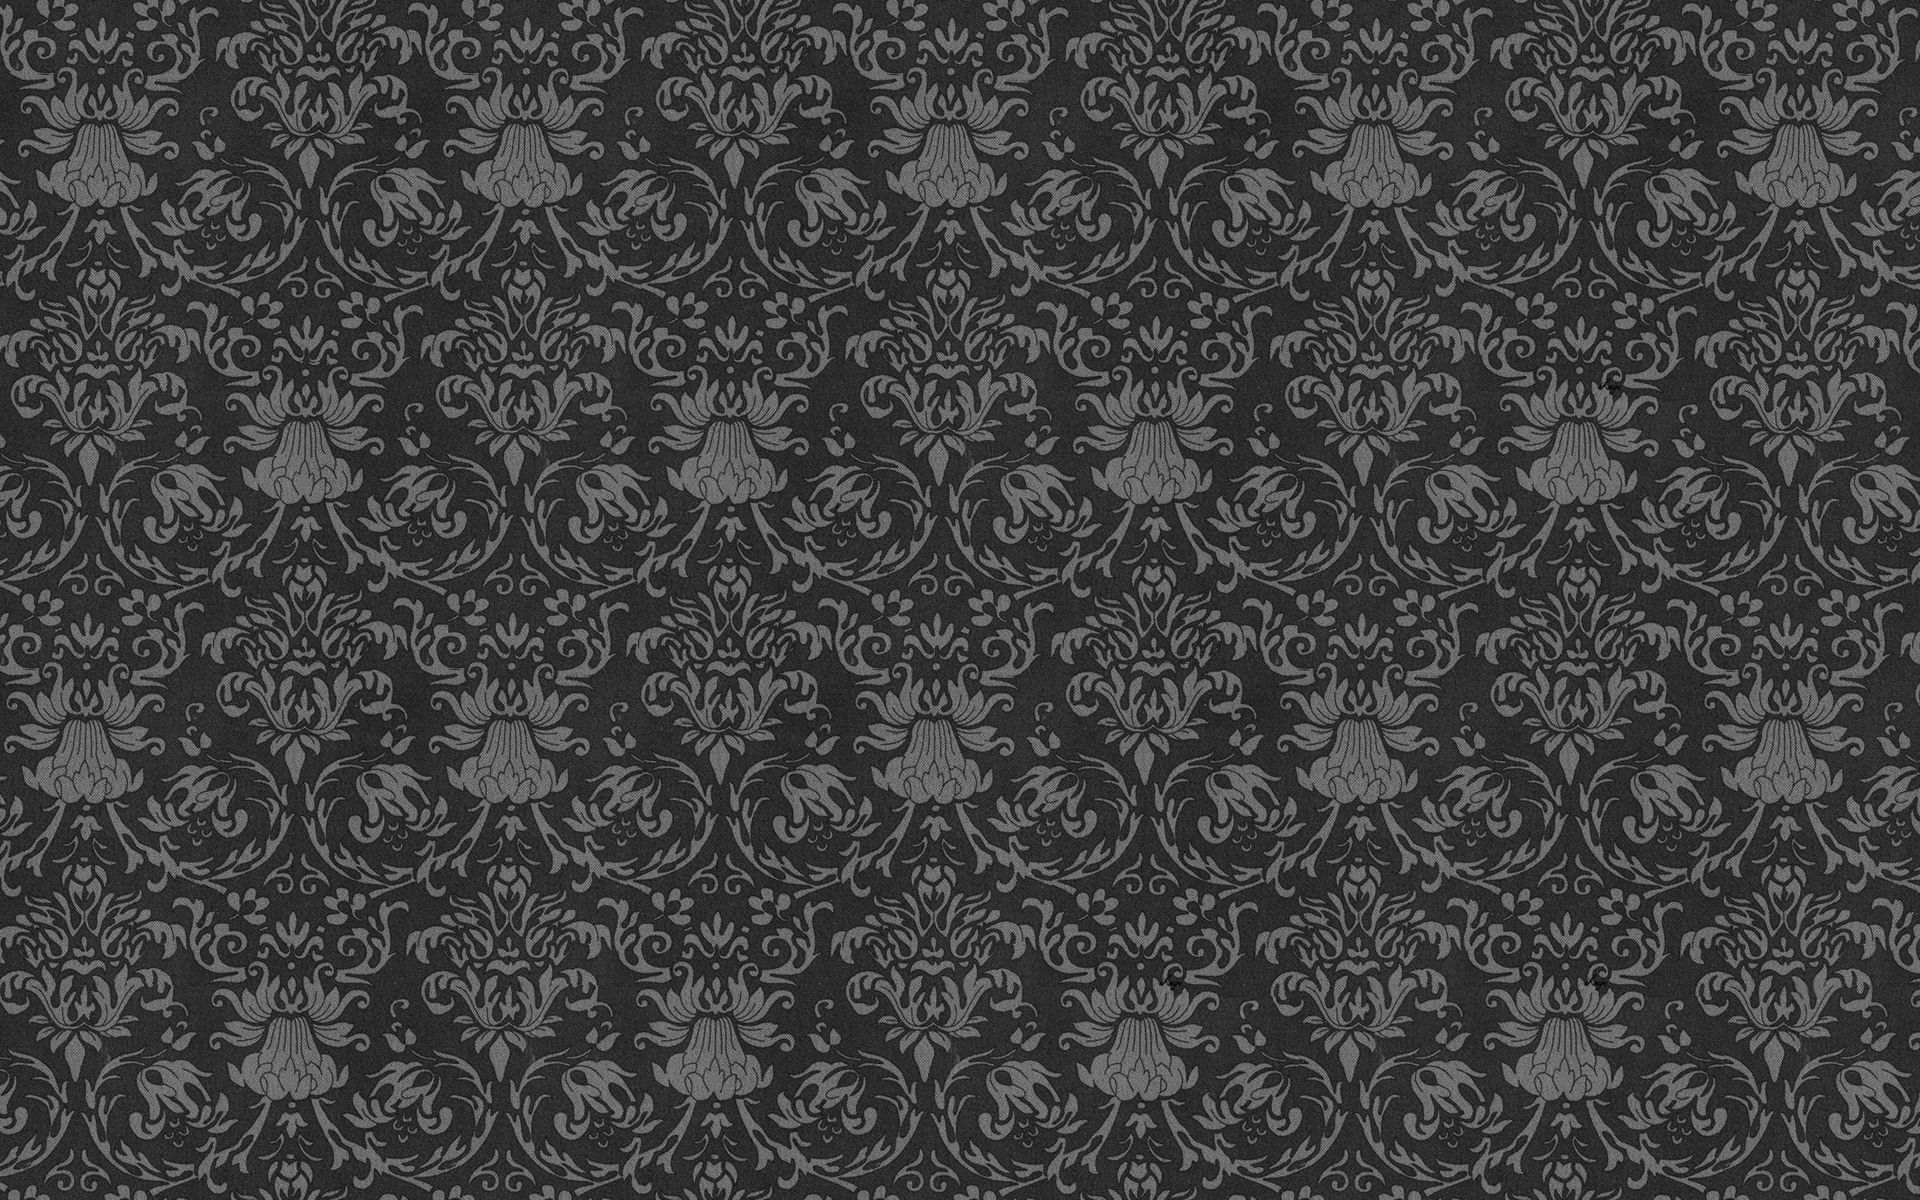 Wall Paper Patterns best ideas about damask wallpaper on pinterest silver 1920×1200